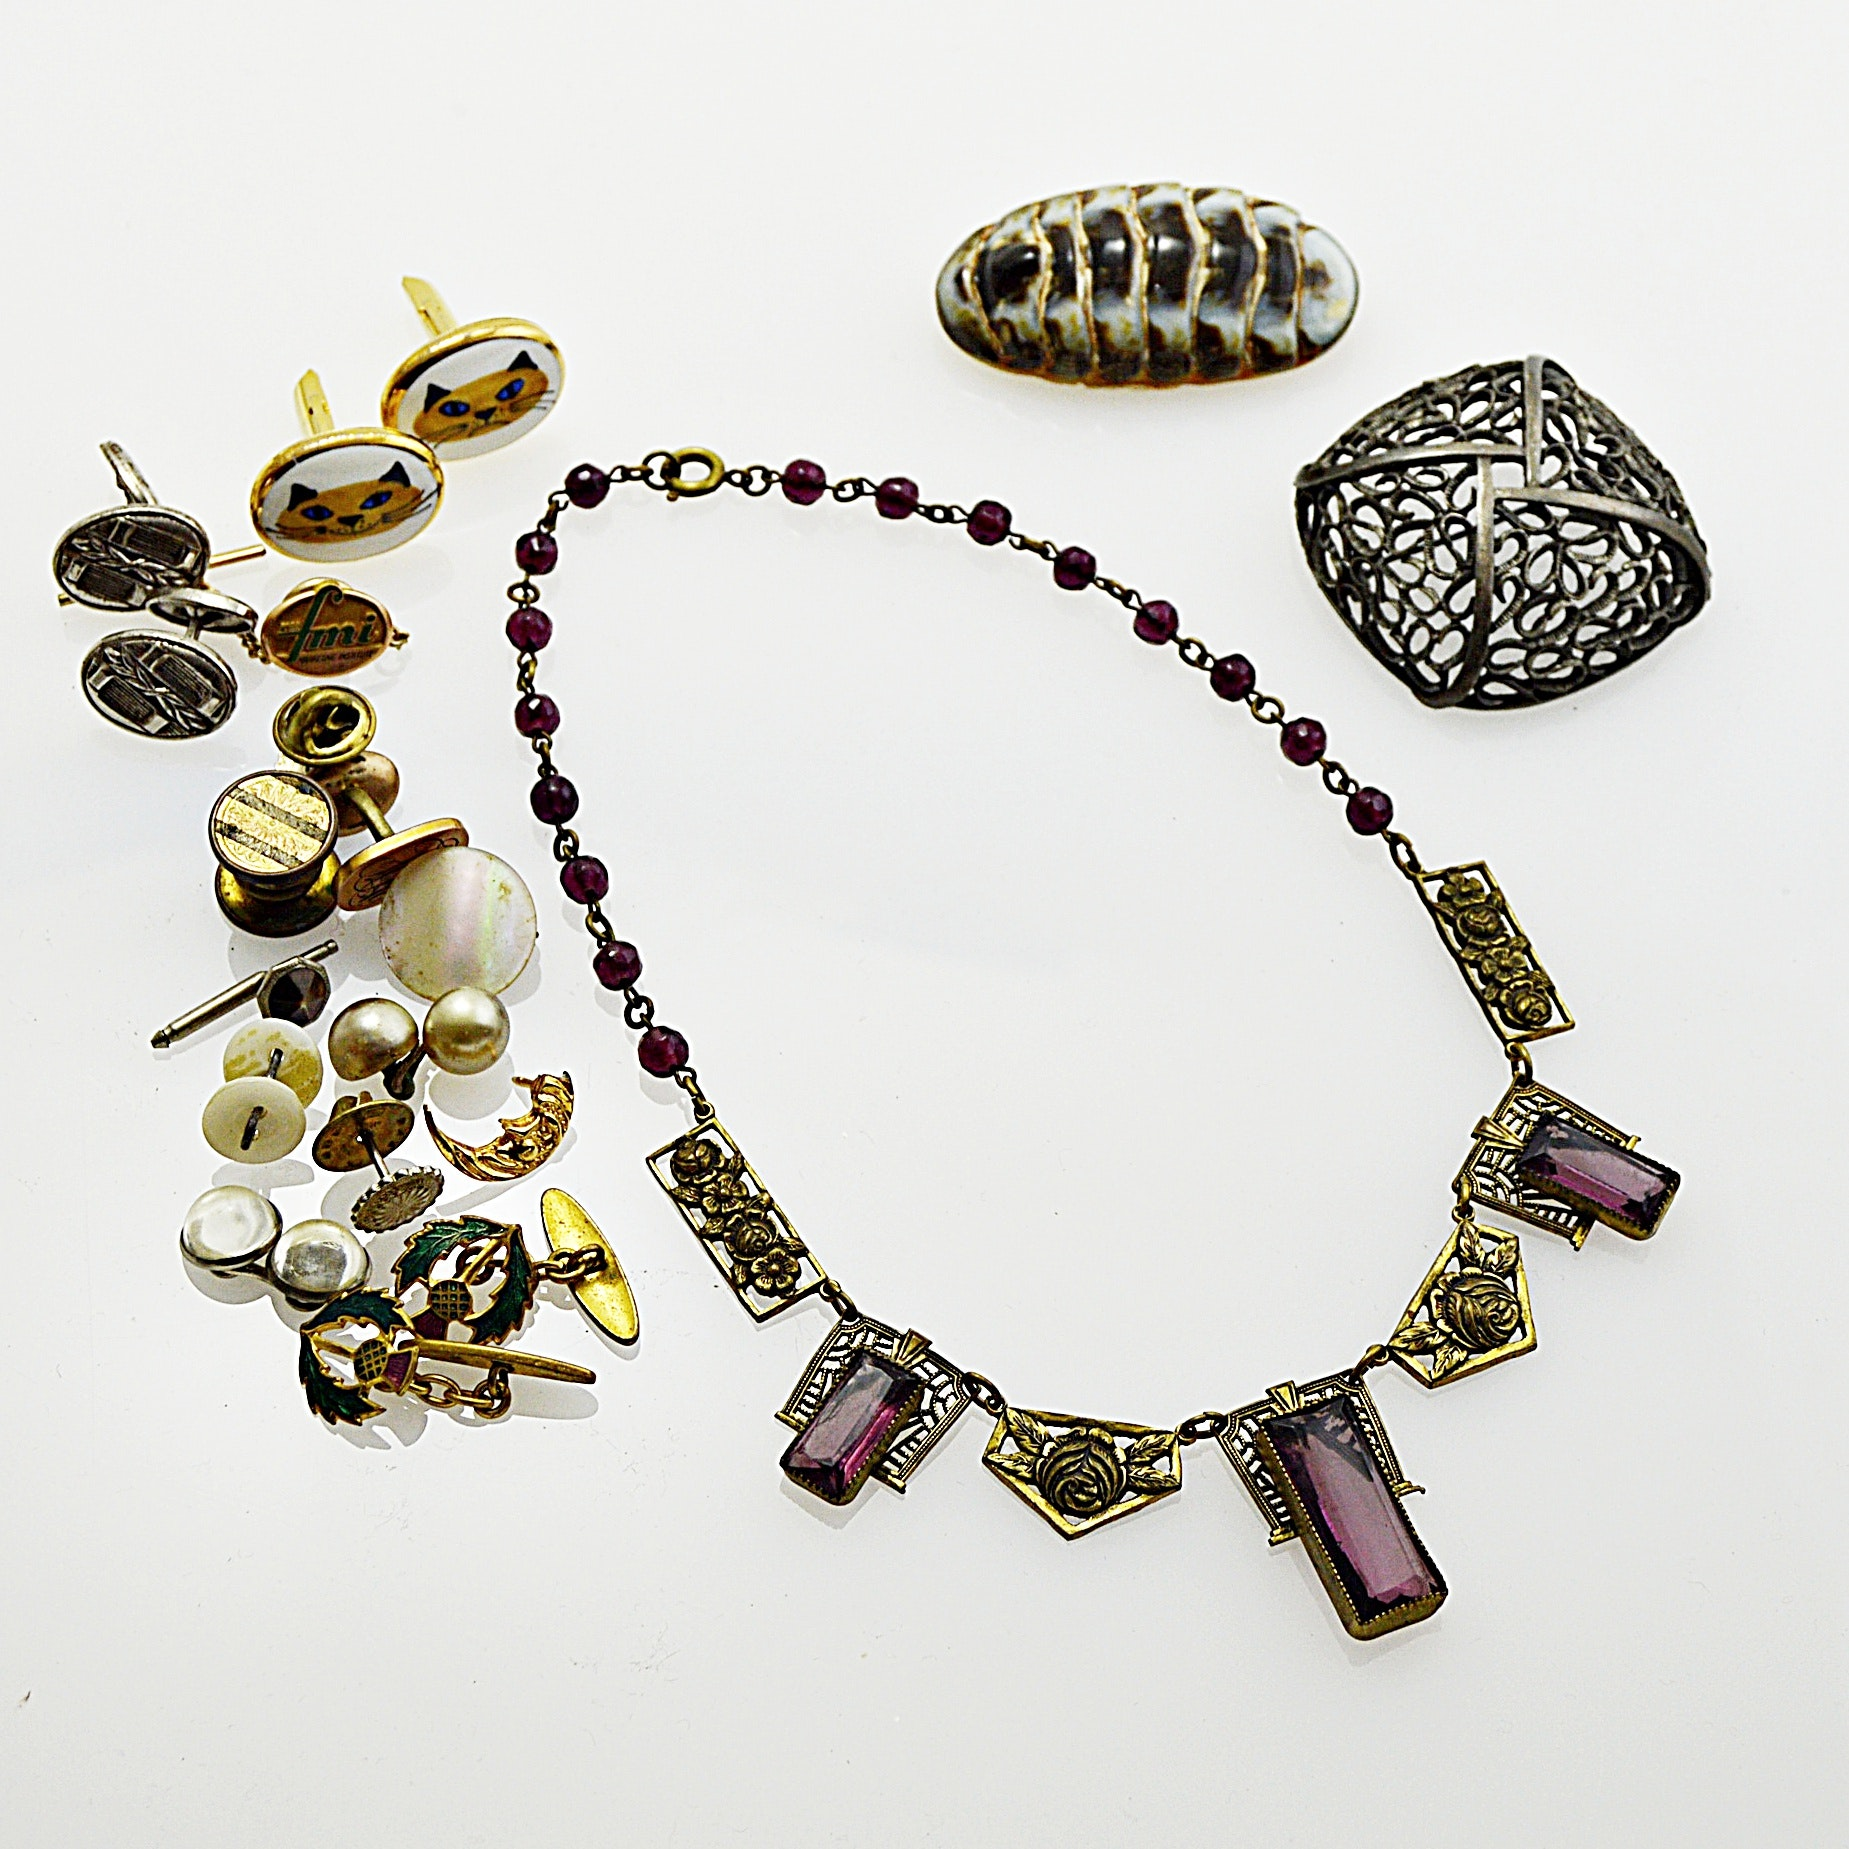 Vintage Jewelry with Chiton Brooch, Art Deco Glass and Brass Necklace